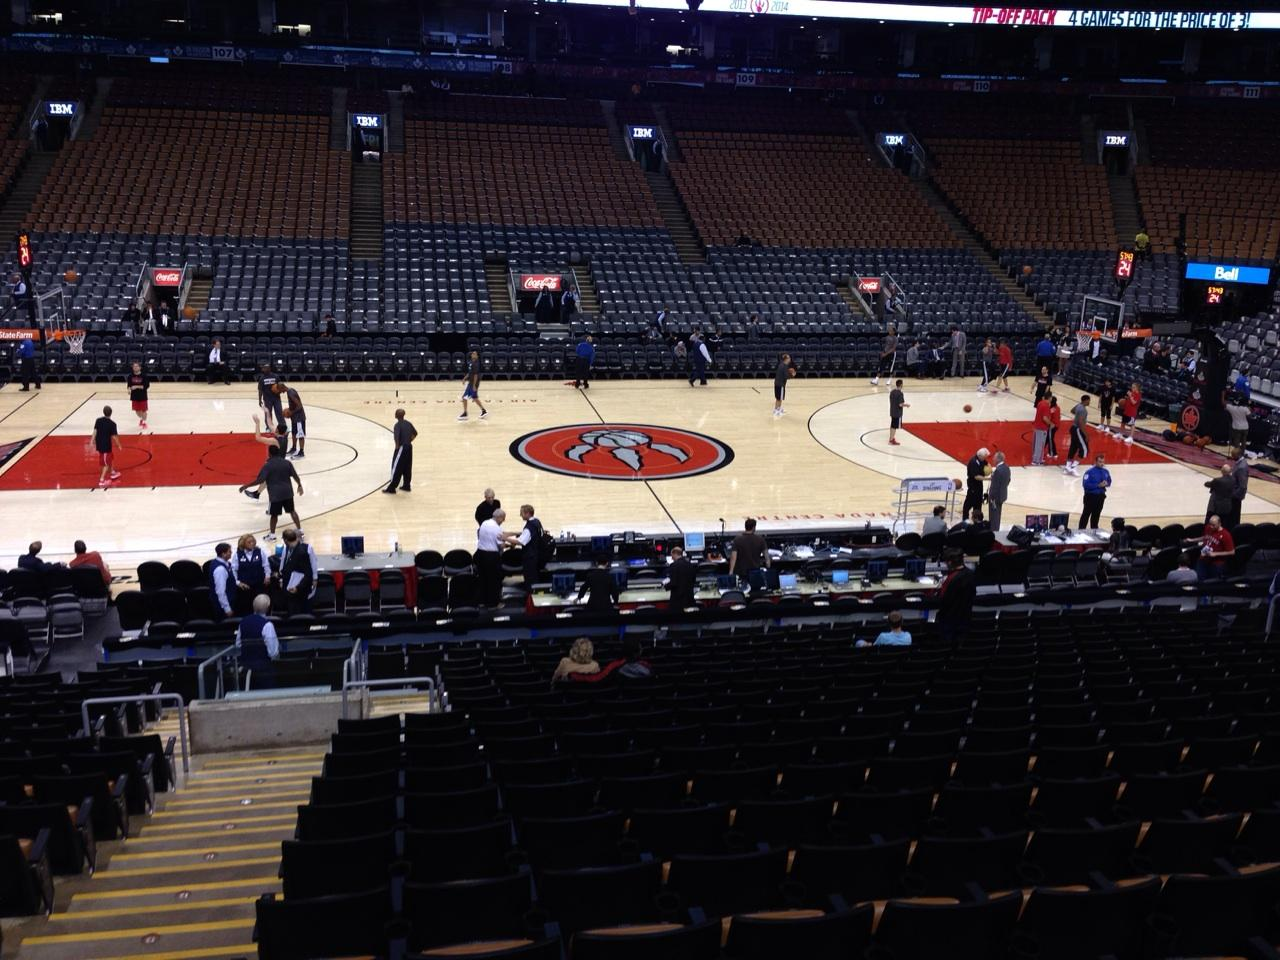 Toronto Raptors Seat View for Air Canada Centre Section 120, Row 20, Seat 42